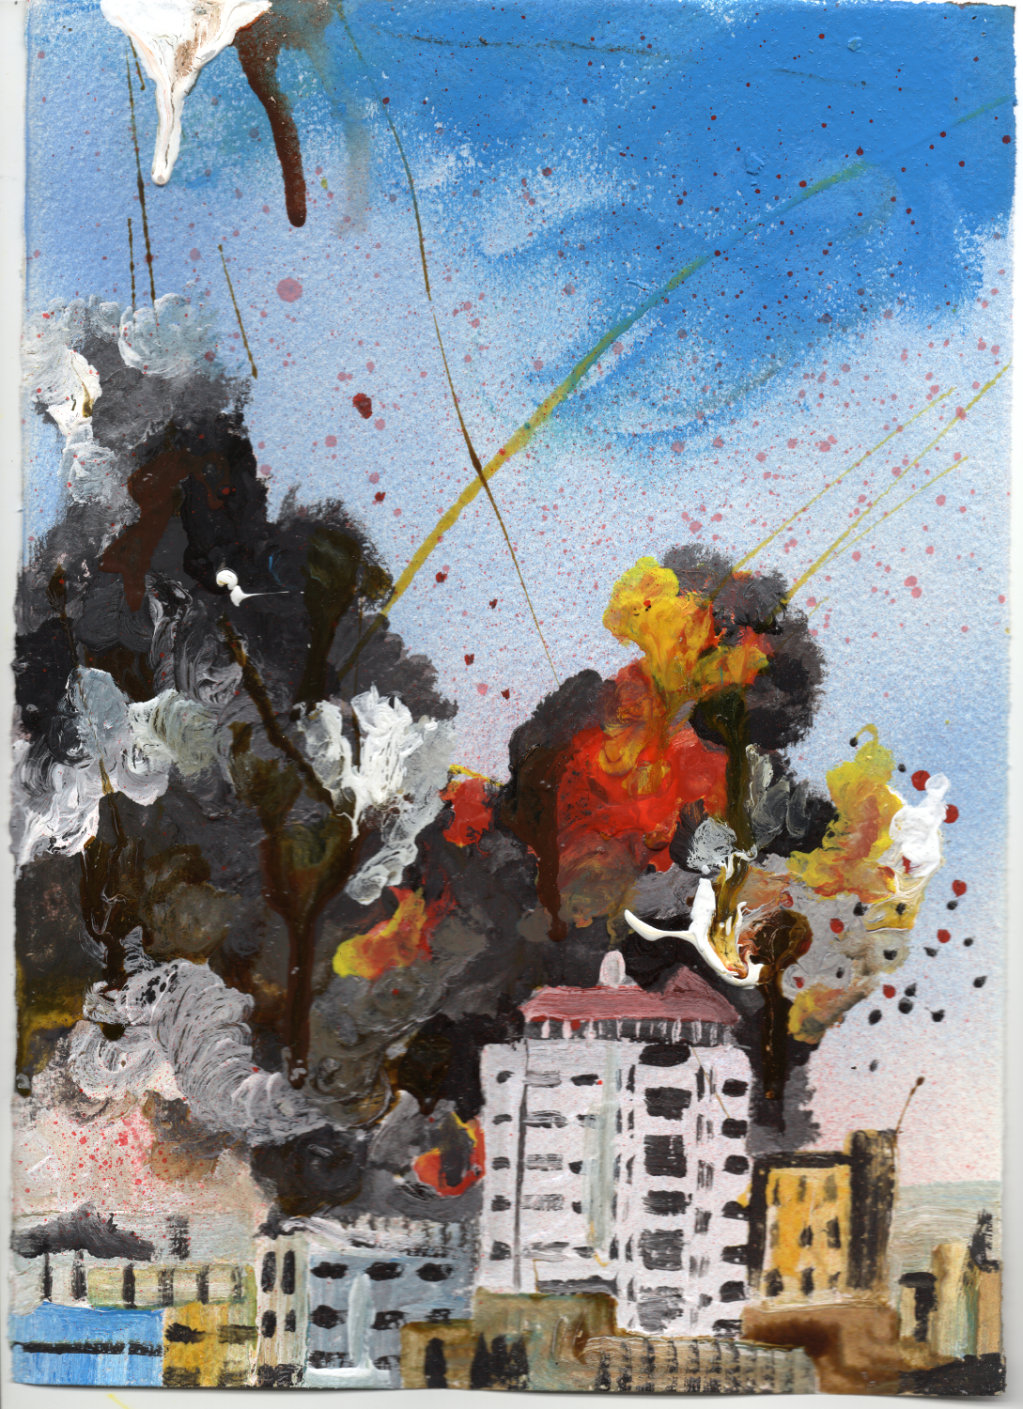 Explosion – White Tower Block (Syria) 2015